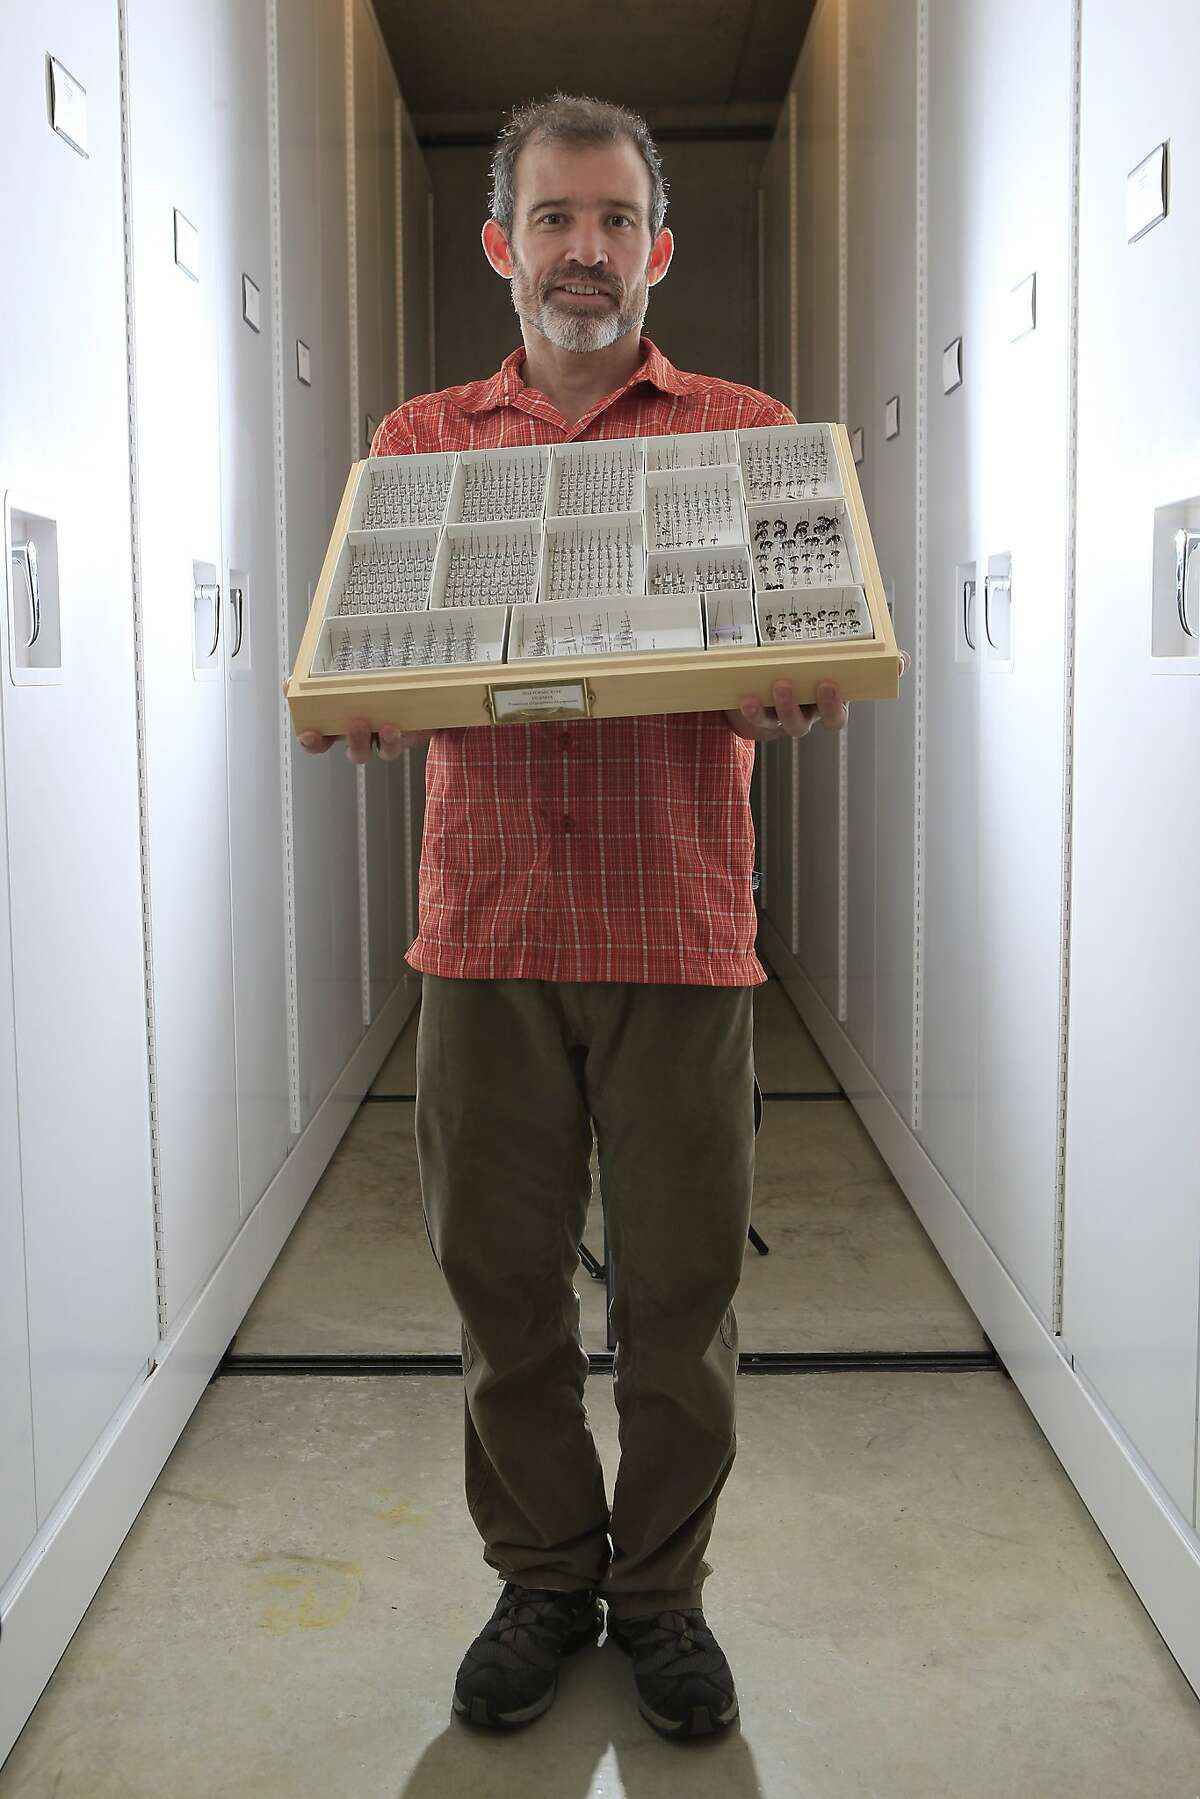 Entomologist Brian Fisher holds a board of ant specimens in the specimen room at the Academy of Sciences in San Francisco, CA, Thursday, August 28, 2014.